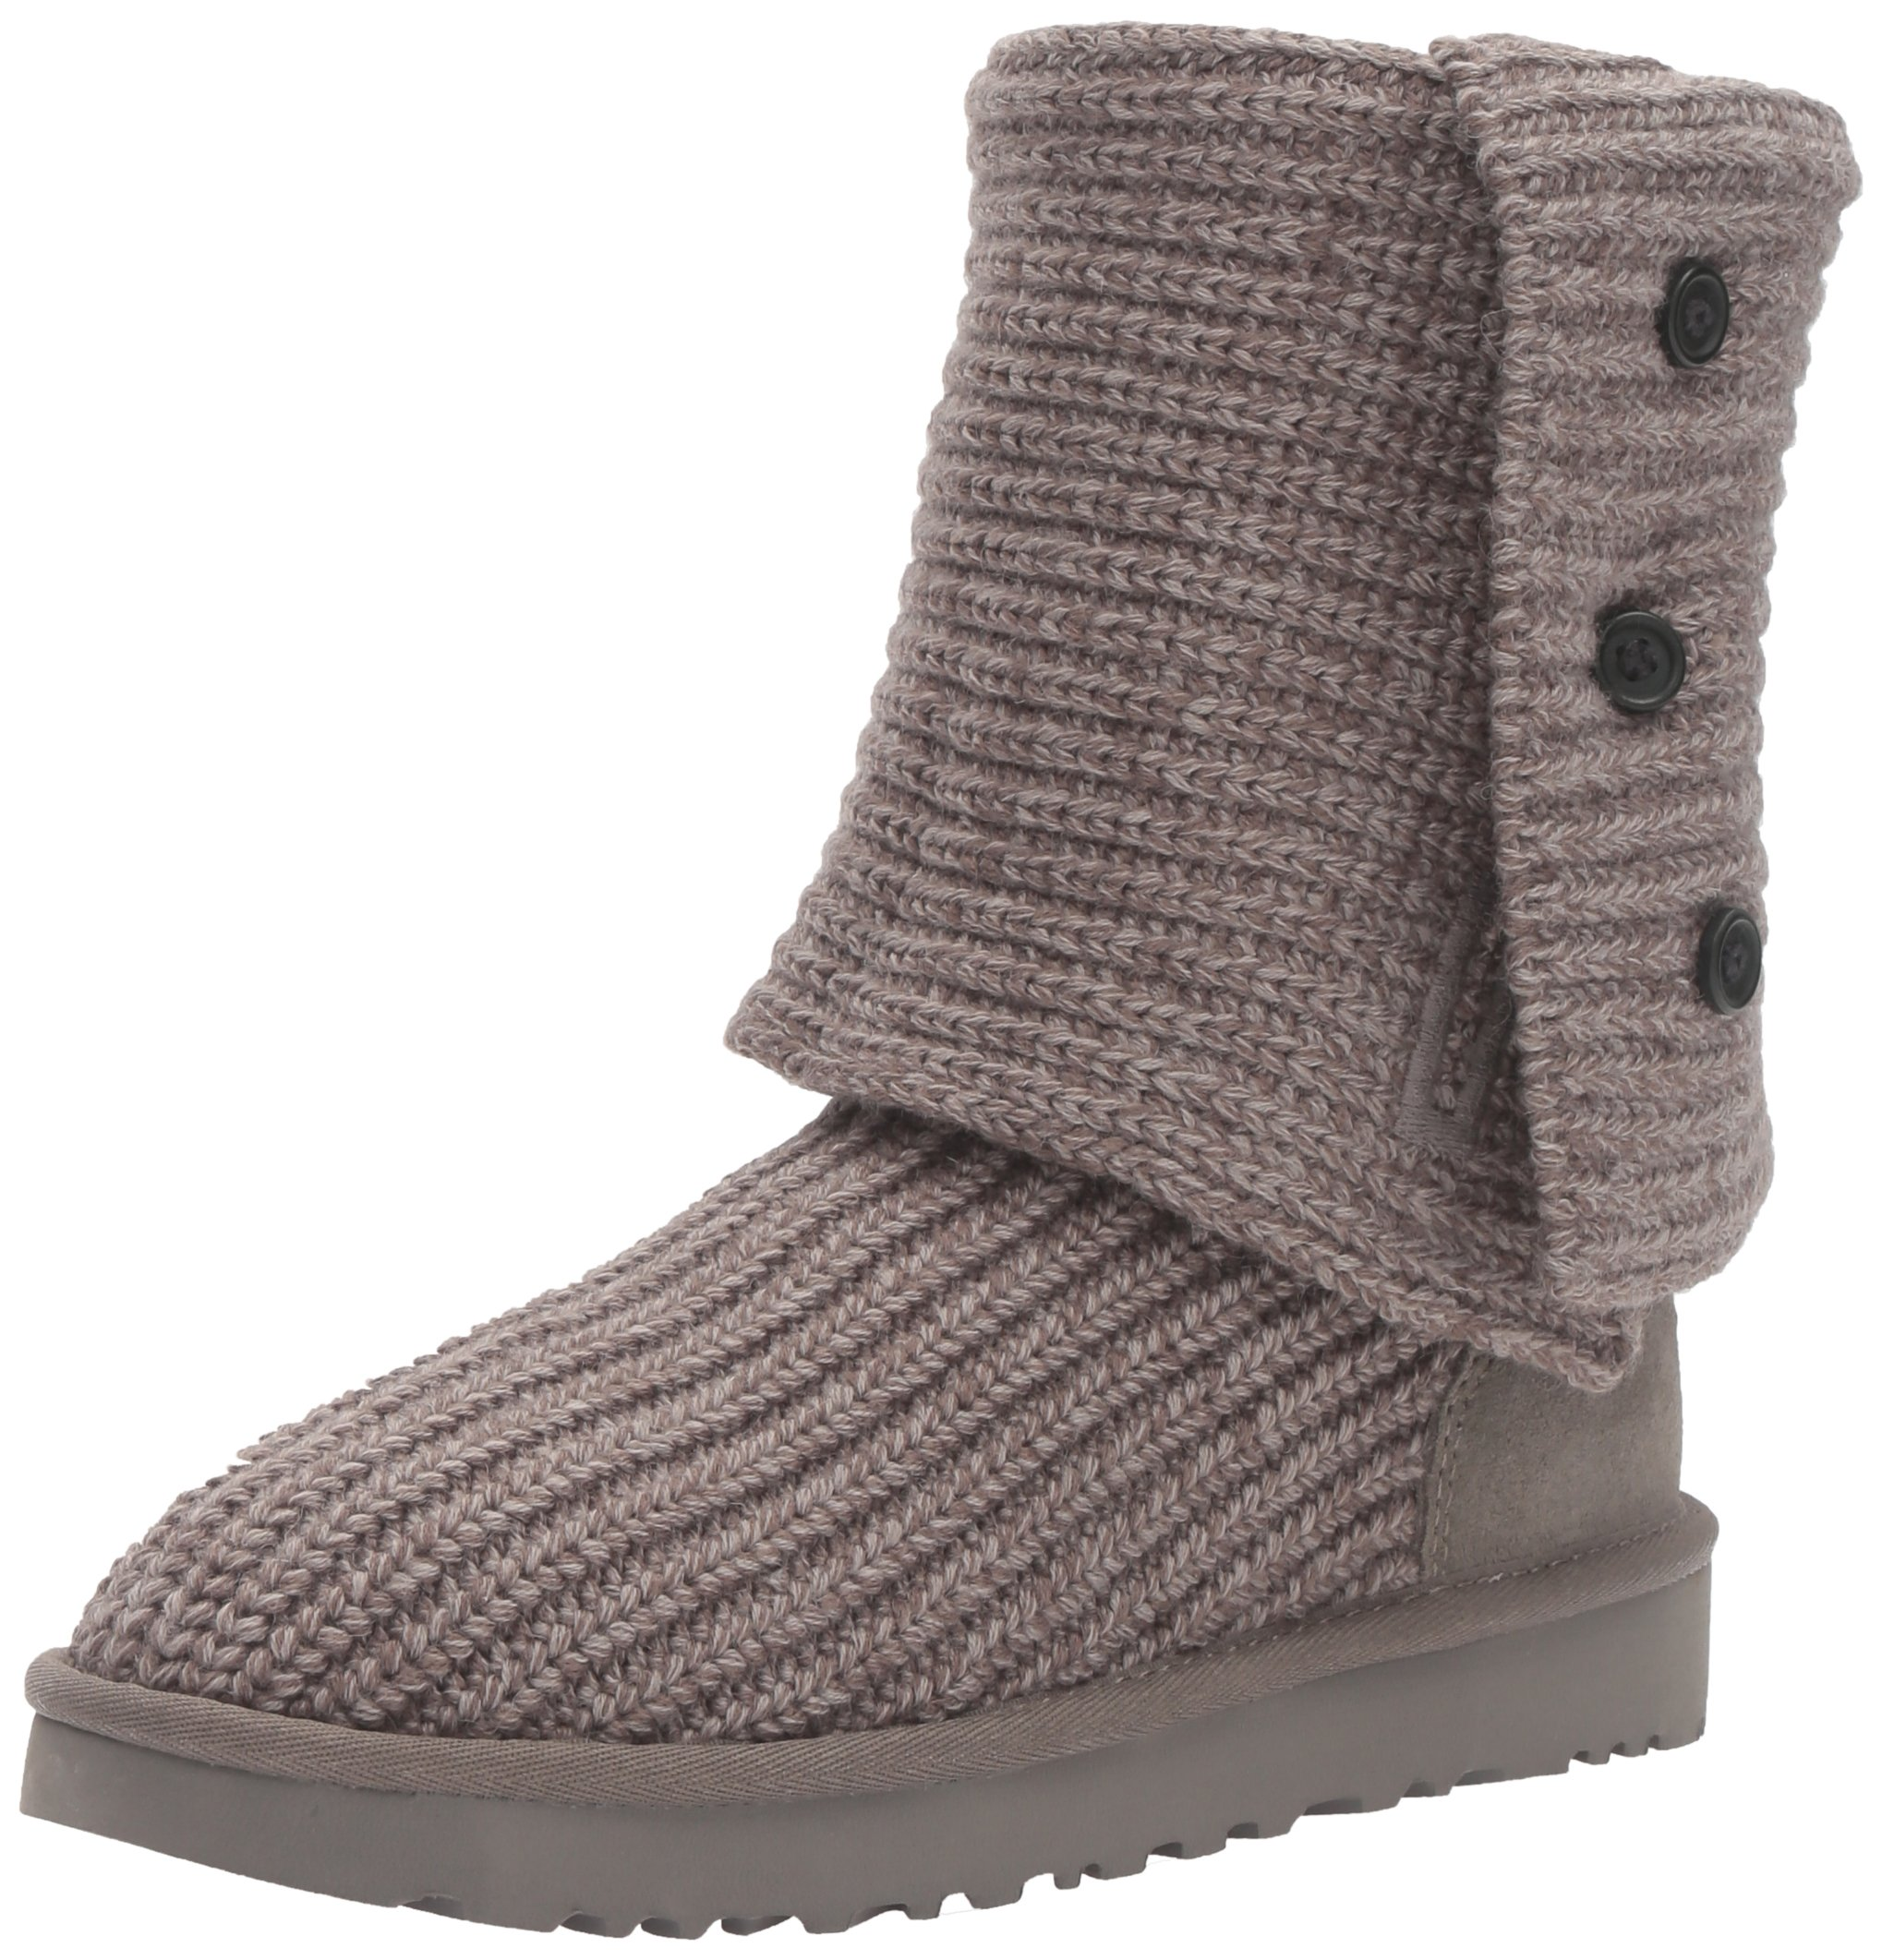 UGG Women's Classic Cardy Winter Boot, Grey, 10 B US